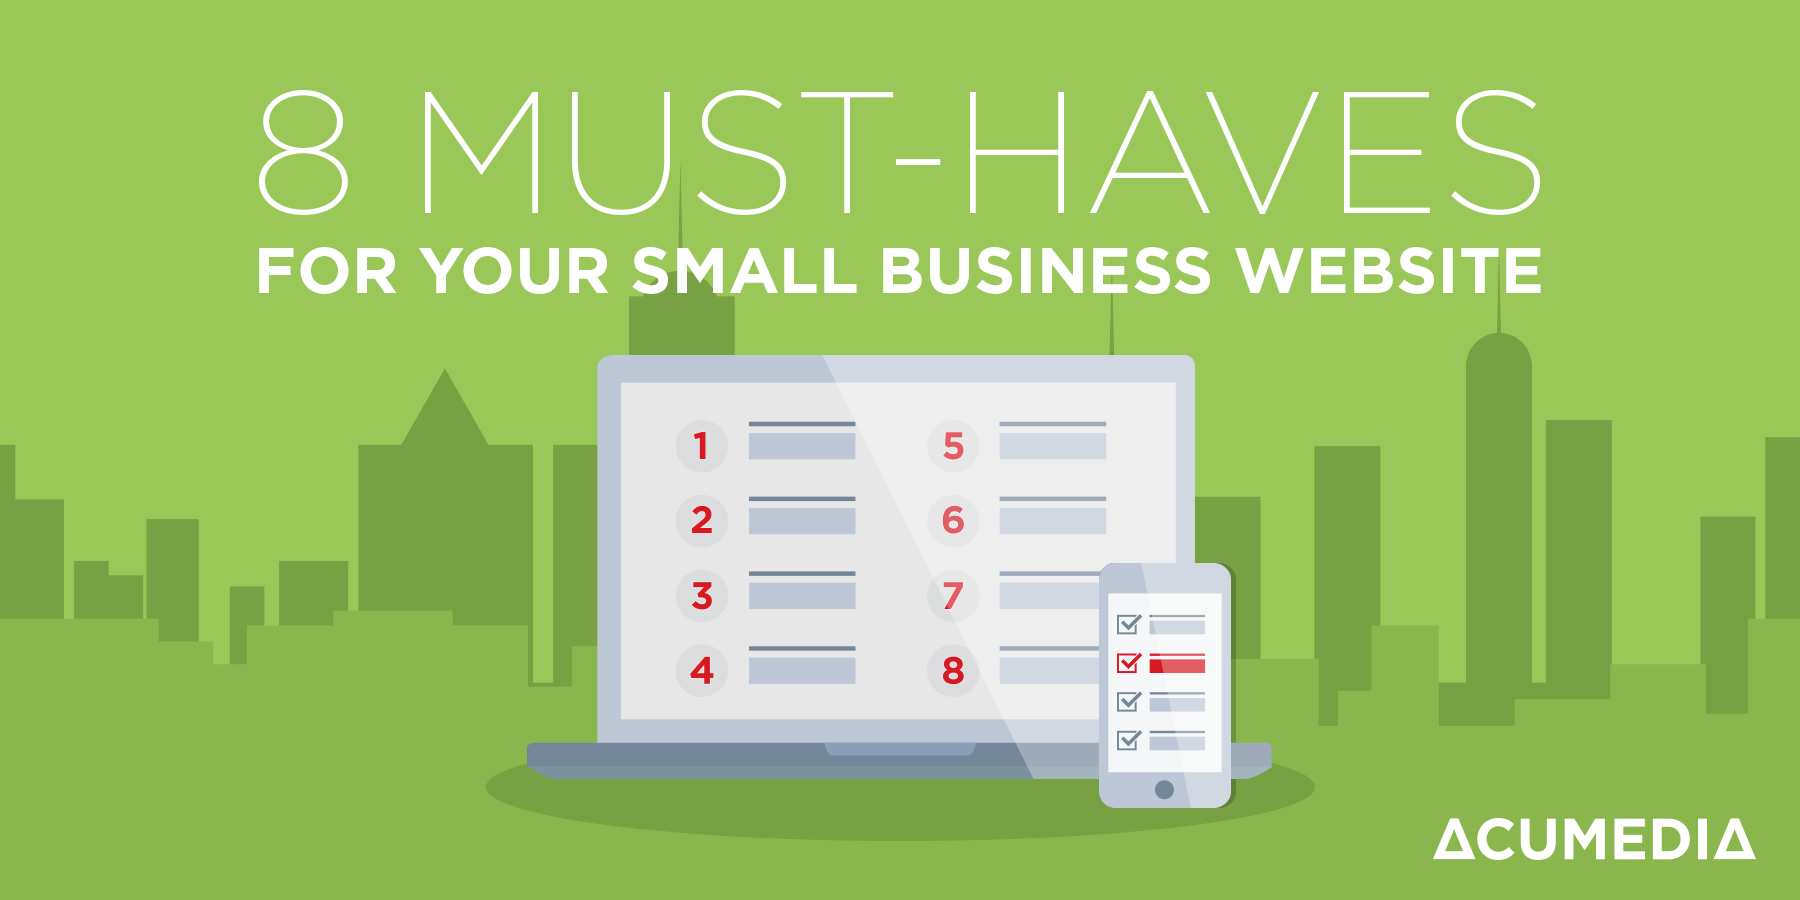 8 Must-Haves for Your Small Business Website